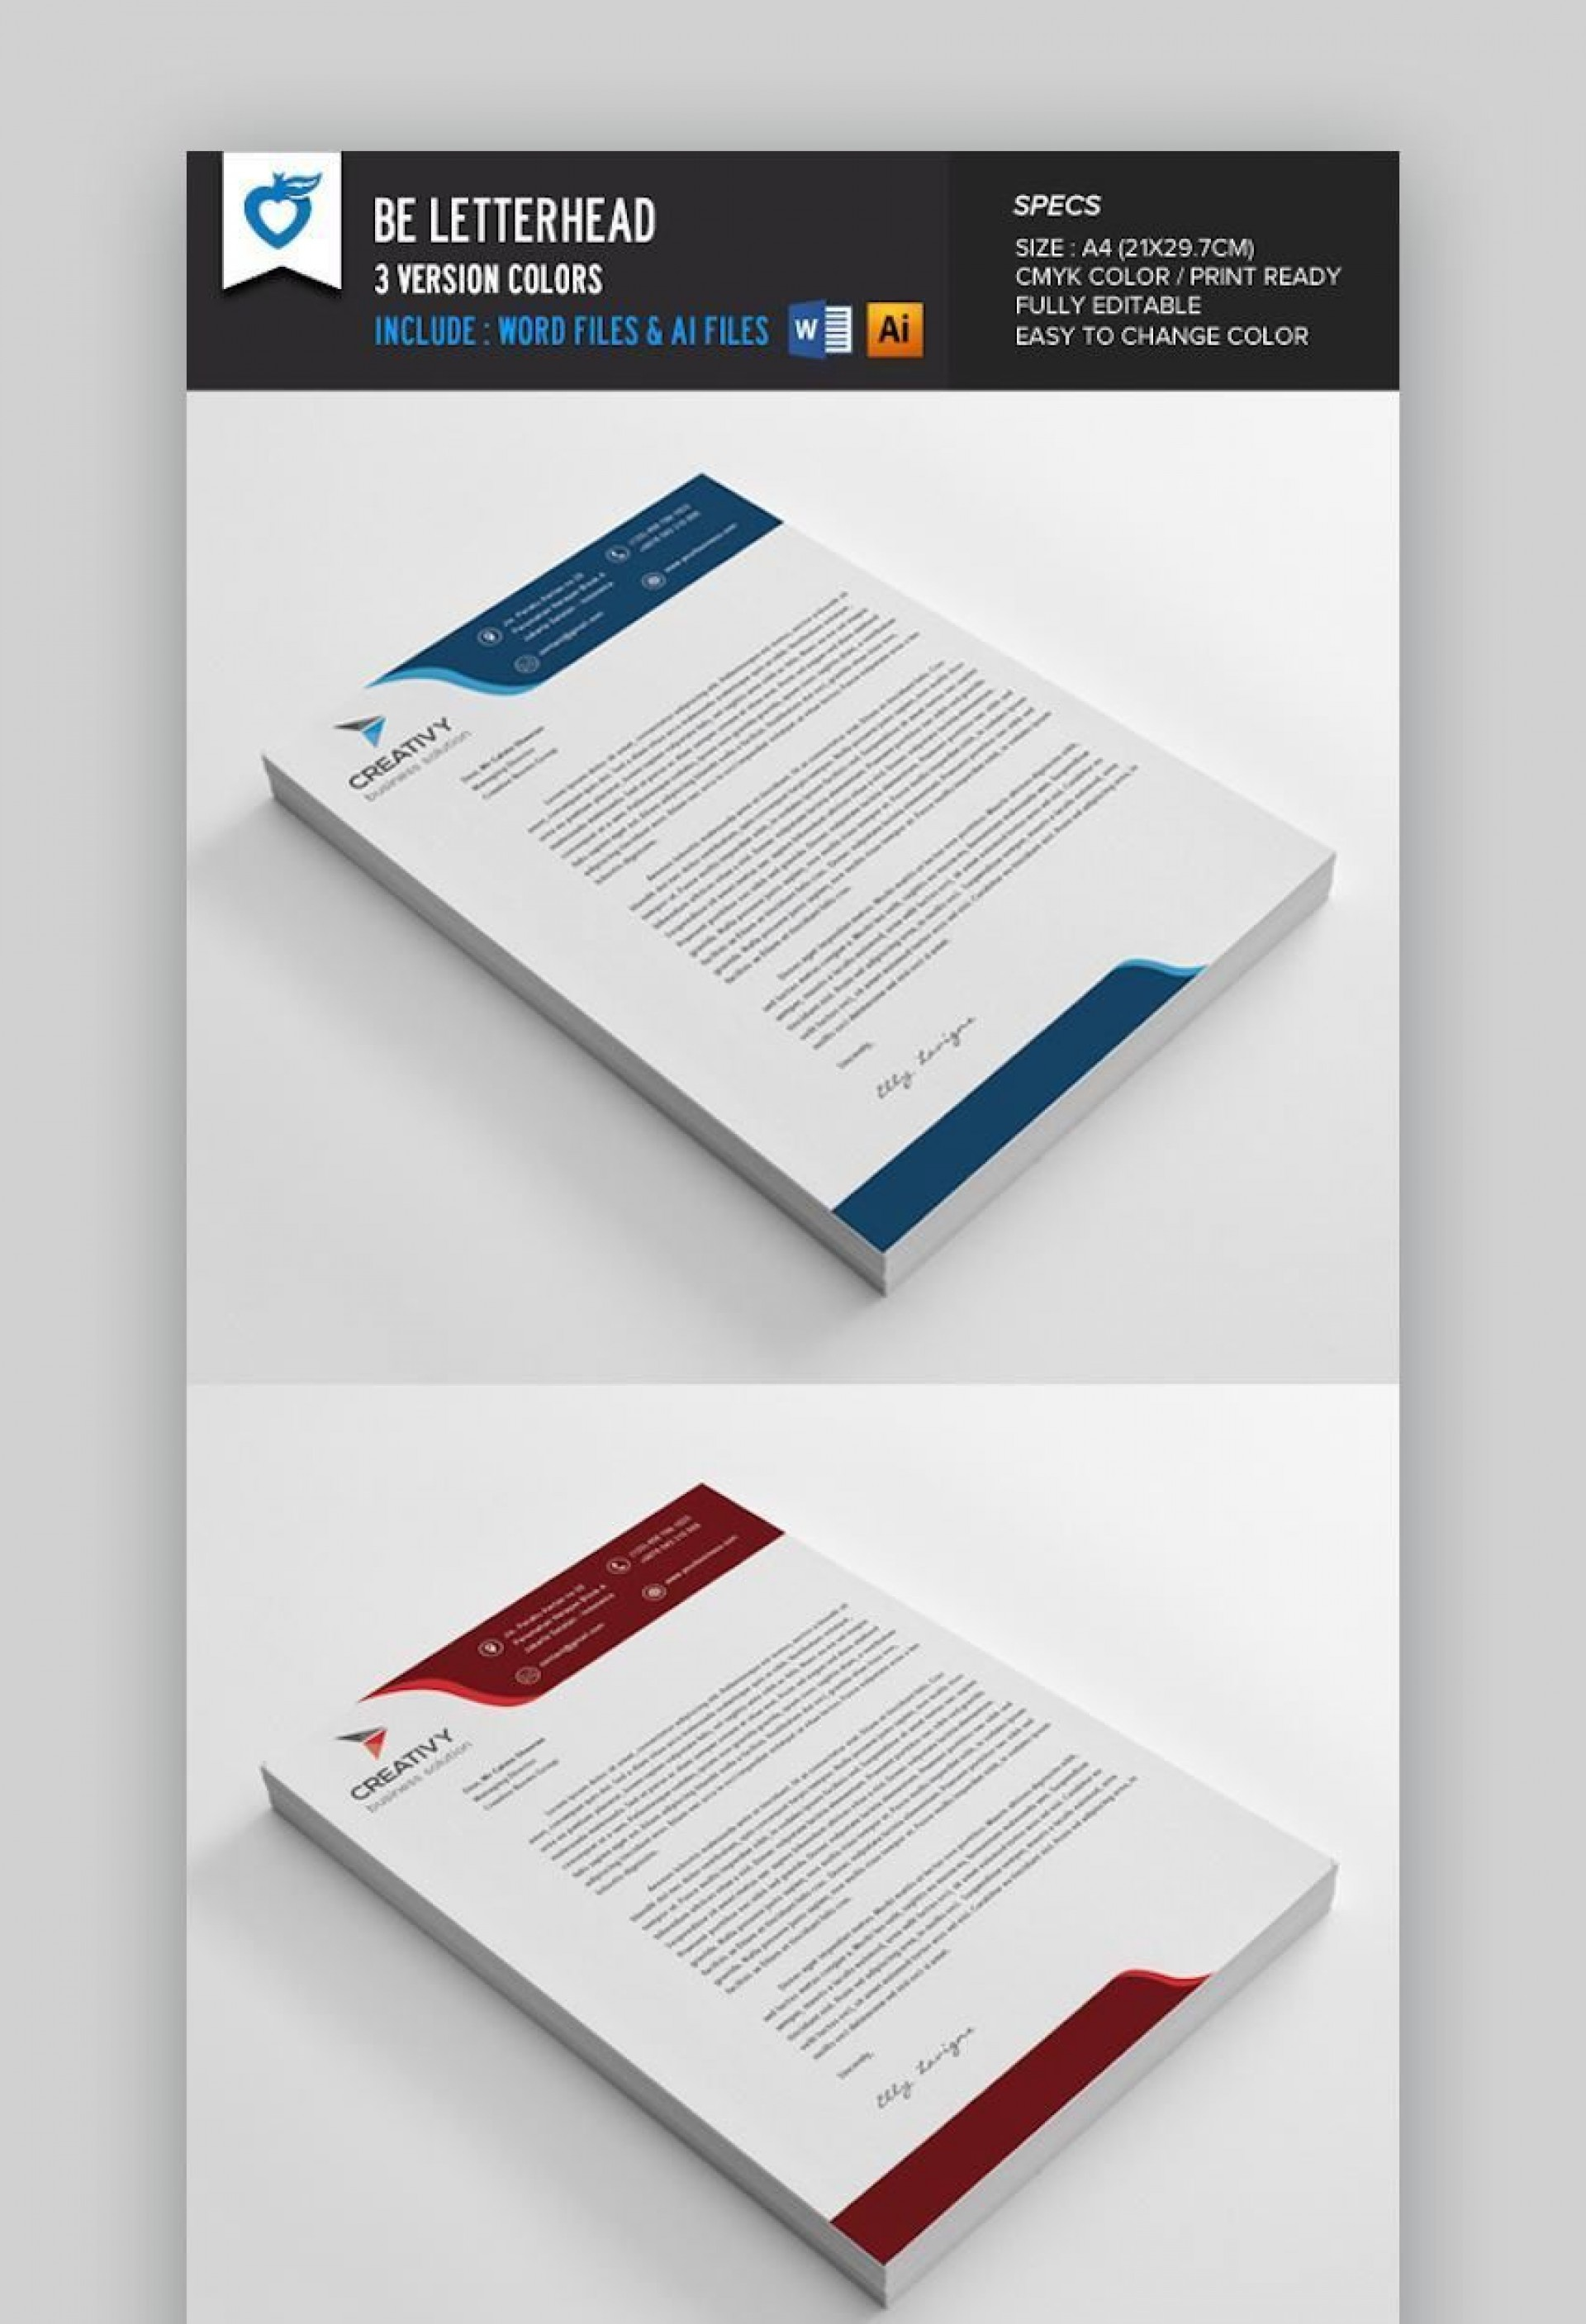 006 Formidable Letterhead Sample In Word Format Free Download  Design Template Psd1920